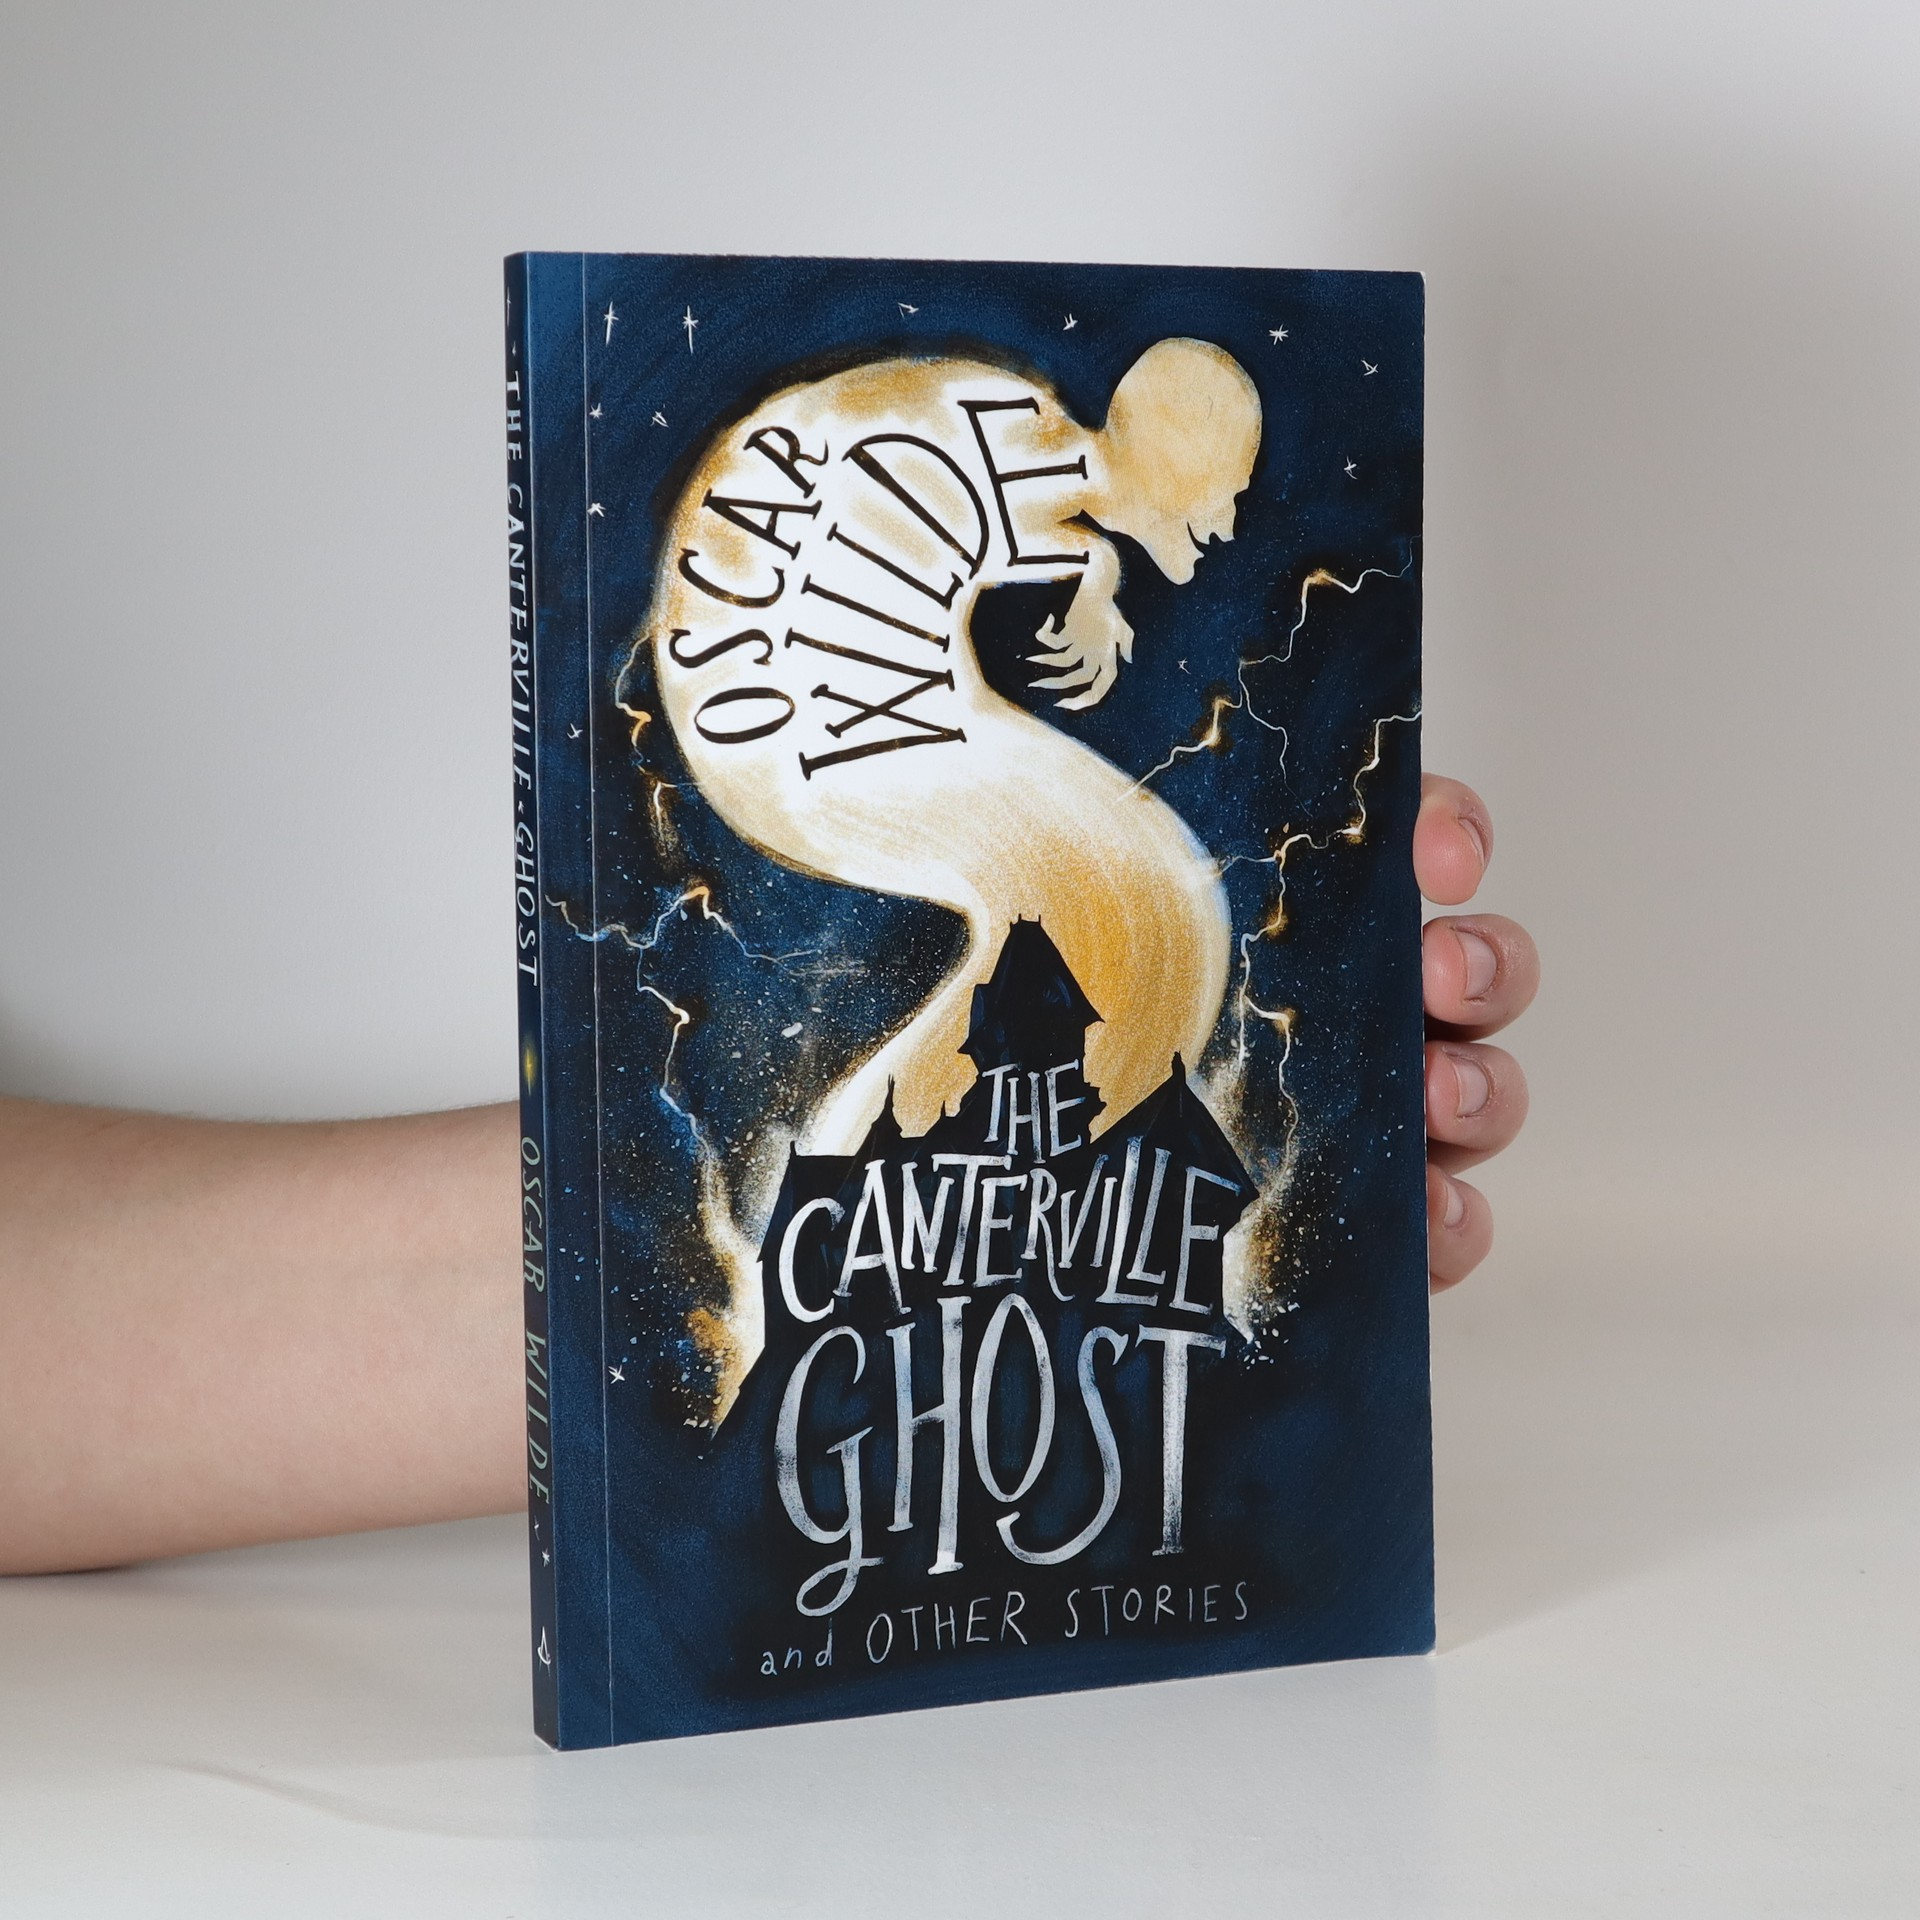 antikvární kniha The Canterville ghost and other stories, 2016